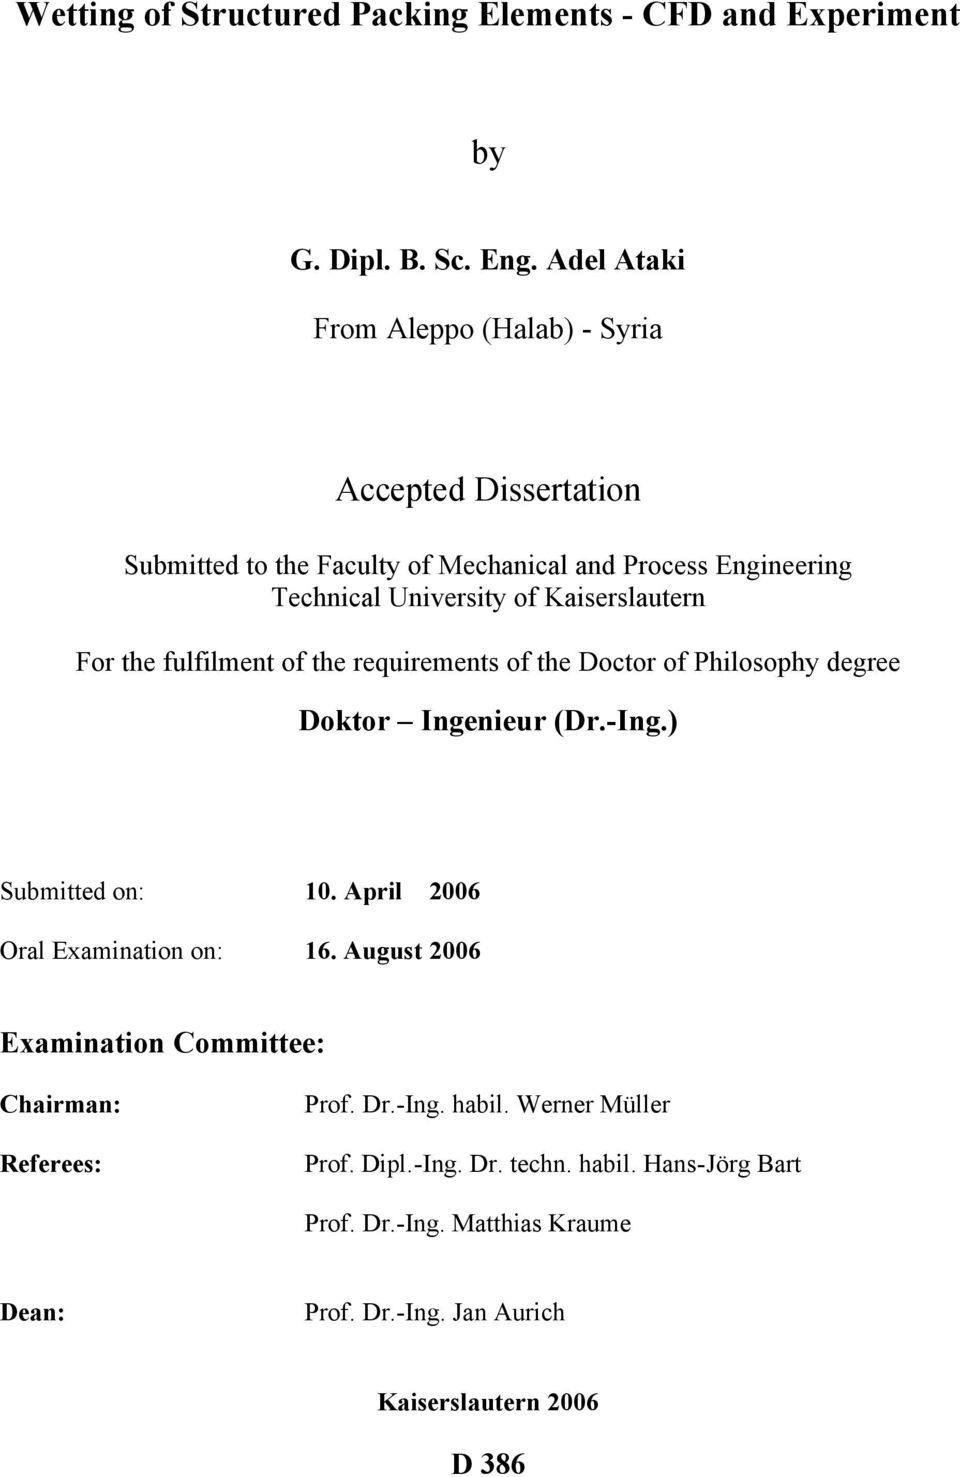 Kaiserslautern For the fulfilment of the requirements of the Doctor of Philosophy degree Doktor Ingenieur (Dr.-Ing.) Submitted on: 10.